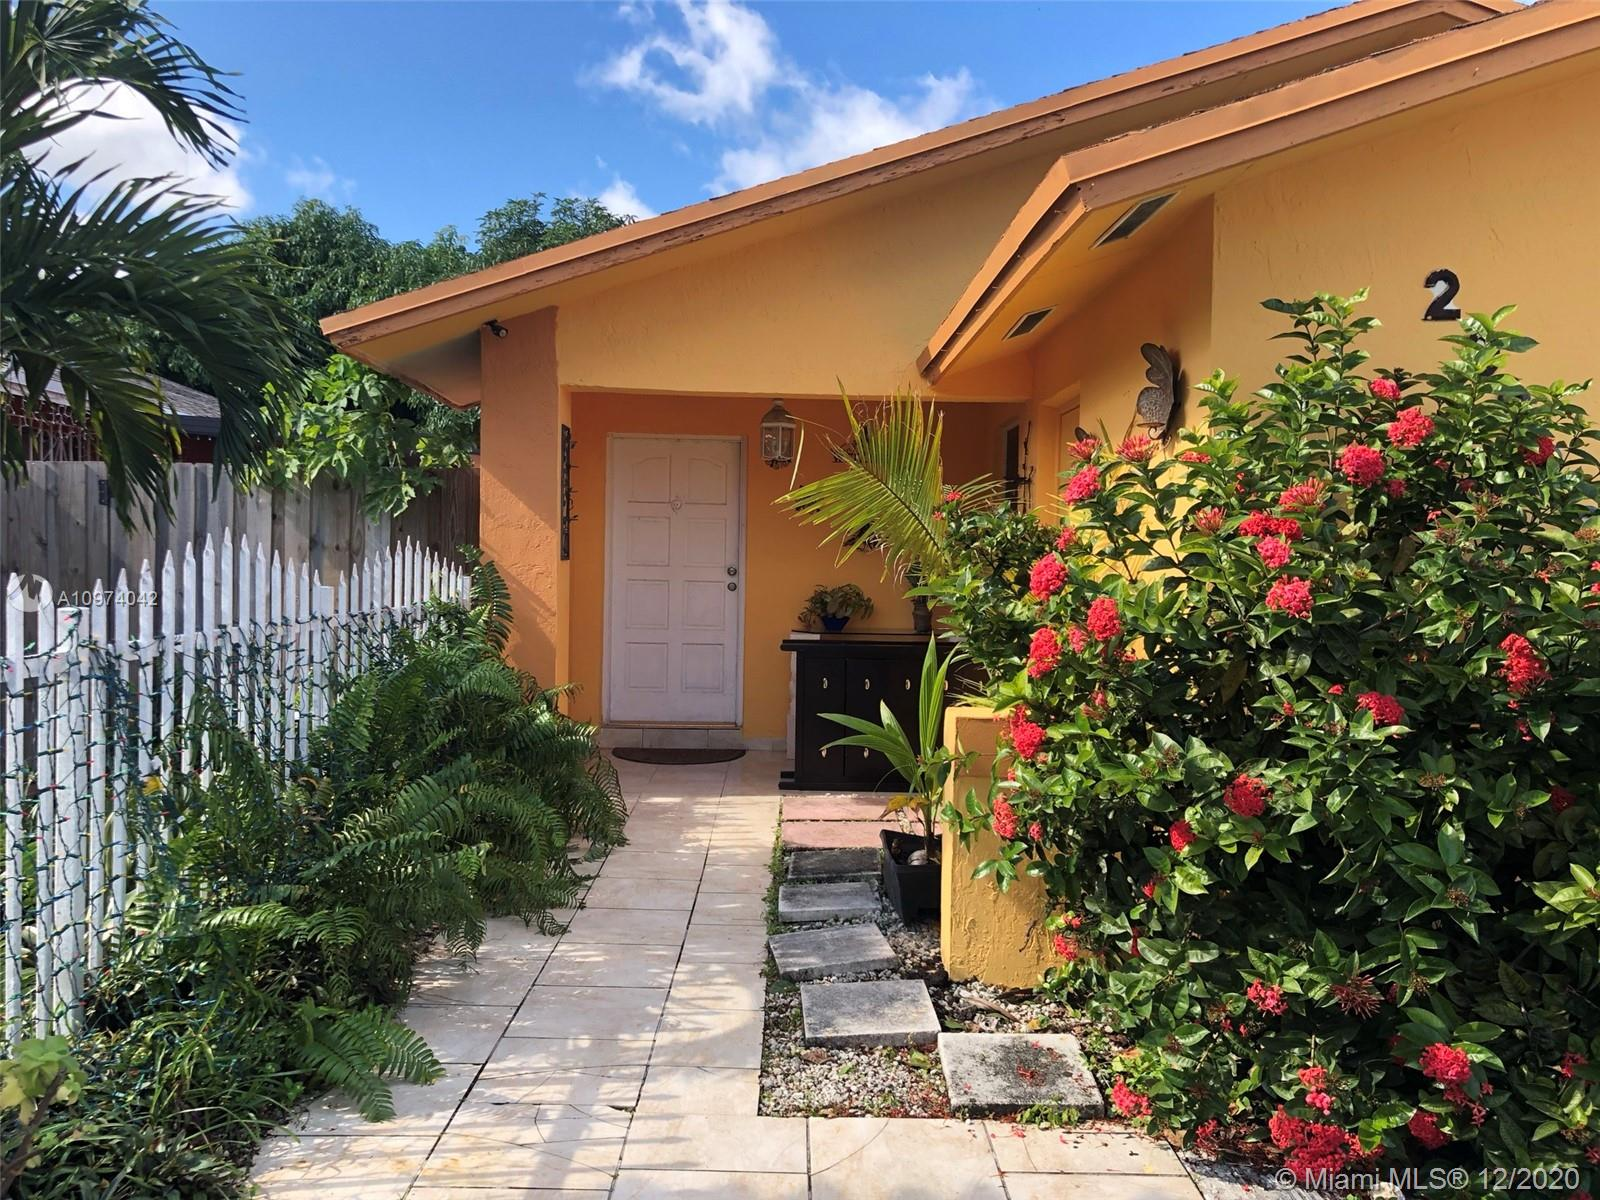 Come and see this property, a good opportunity that will not last in the market due to the attractive income it generates; Perfect for first time buyers or to invest, the property has two rented efficiencies. Two miles from Caribeam Blvd. near schools, shops, mall and highways. Without Association. Property is being sold AS IS, owner-occupied. Request the appointment 24 hours in advance.  All offer must accompany prof of funds or  loan DU.